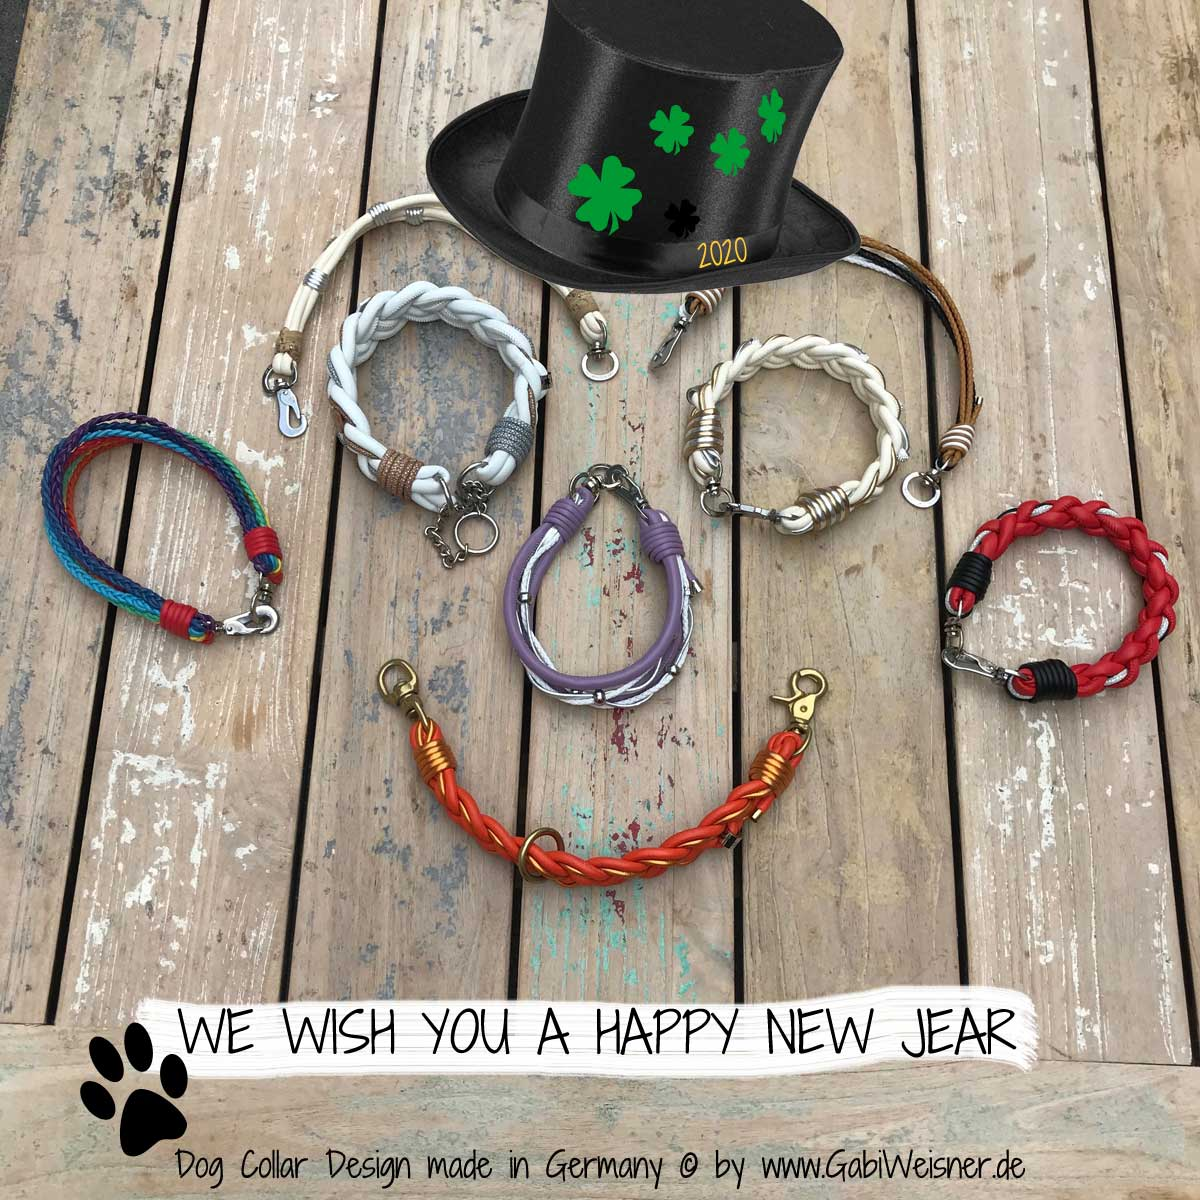 WE WISH YOU A HAPPY NEW JEAR